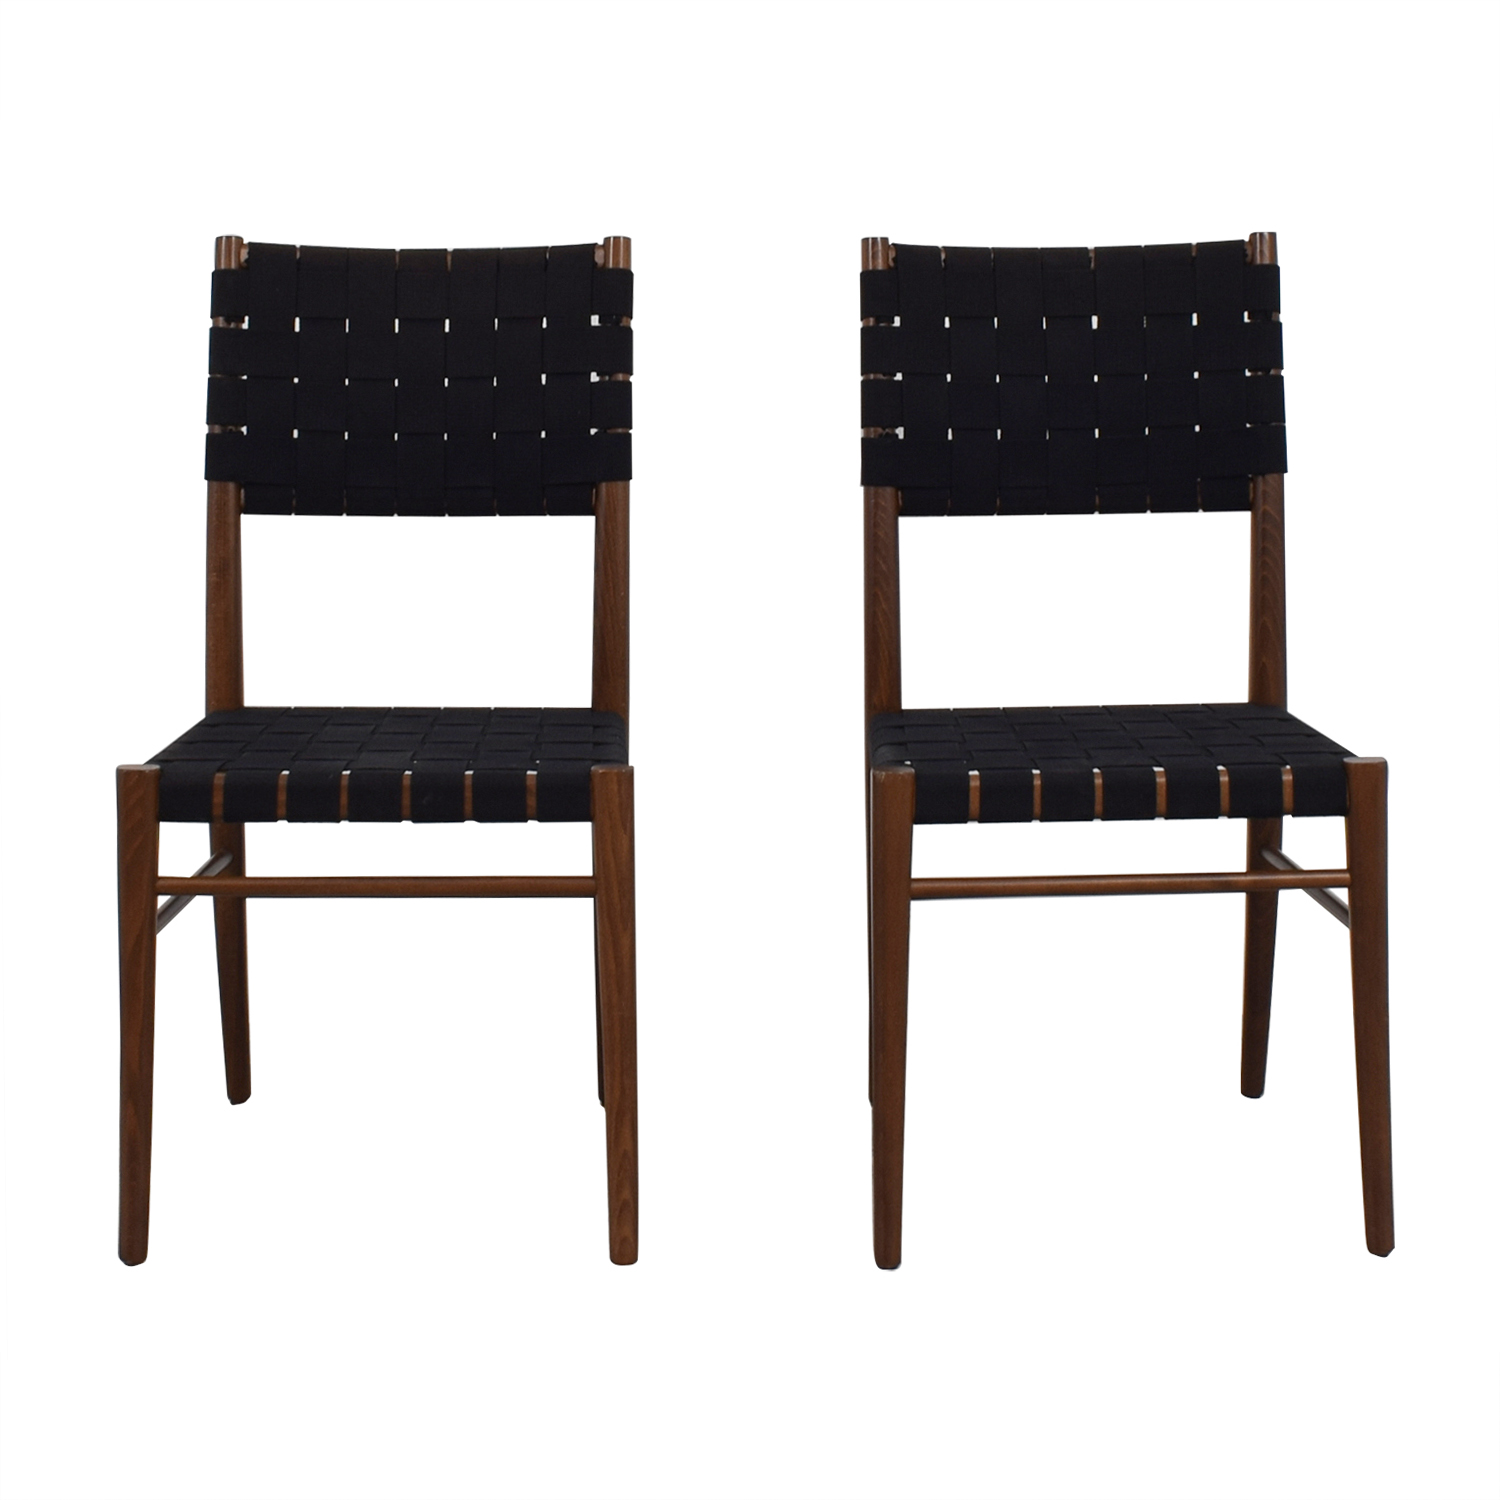 Crate & Barrel Crate & Barrel Black Dining Chairs Black, Brown